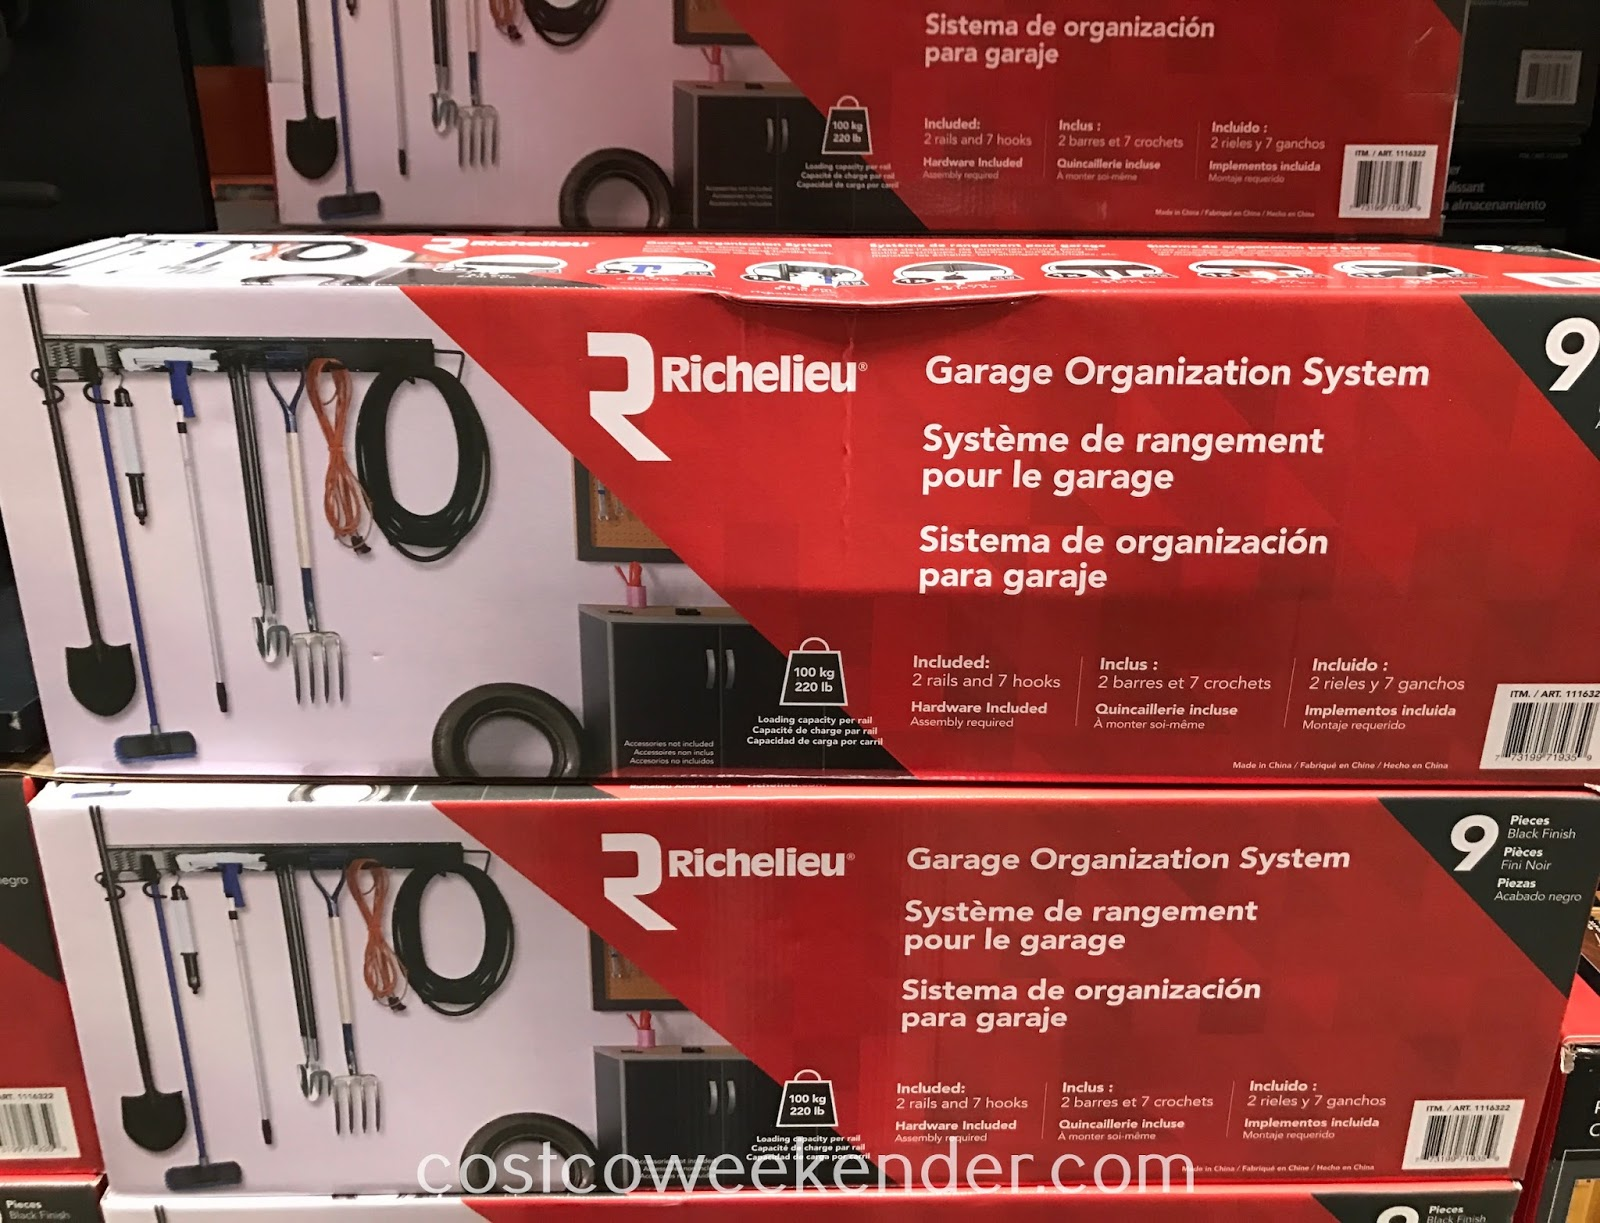 Costco 1116322 - Prevent your garage from being a storage area with the Richelieu Garage Organization System